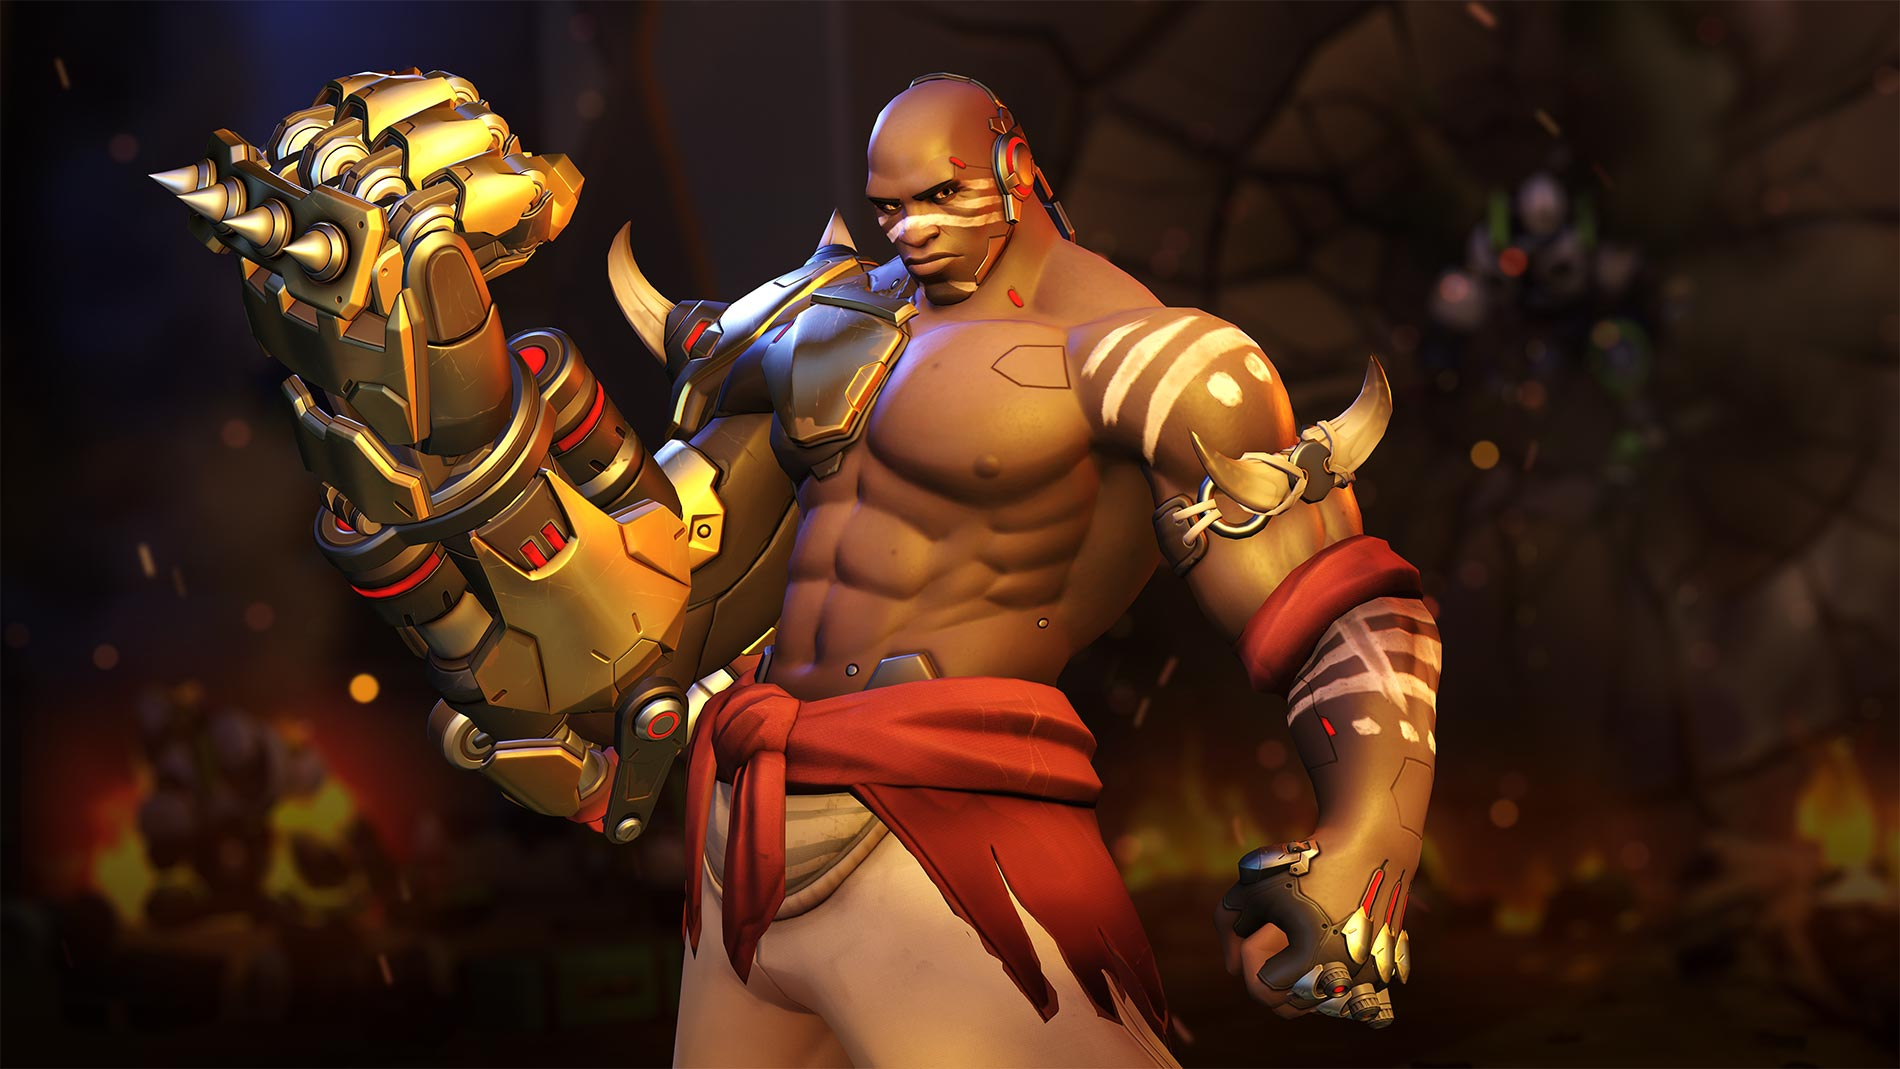 doomfist-screenshot-003.jpg